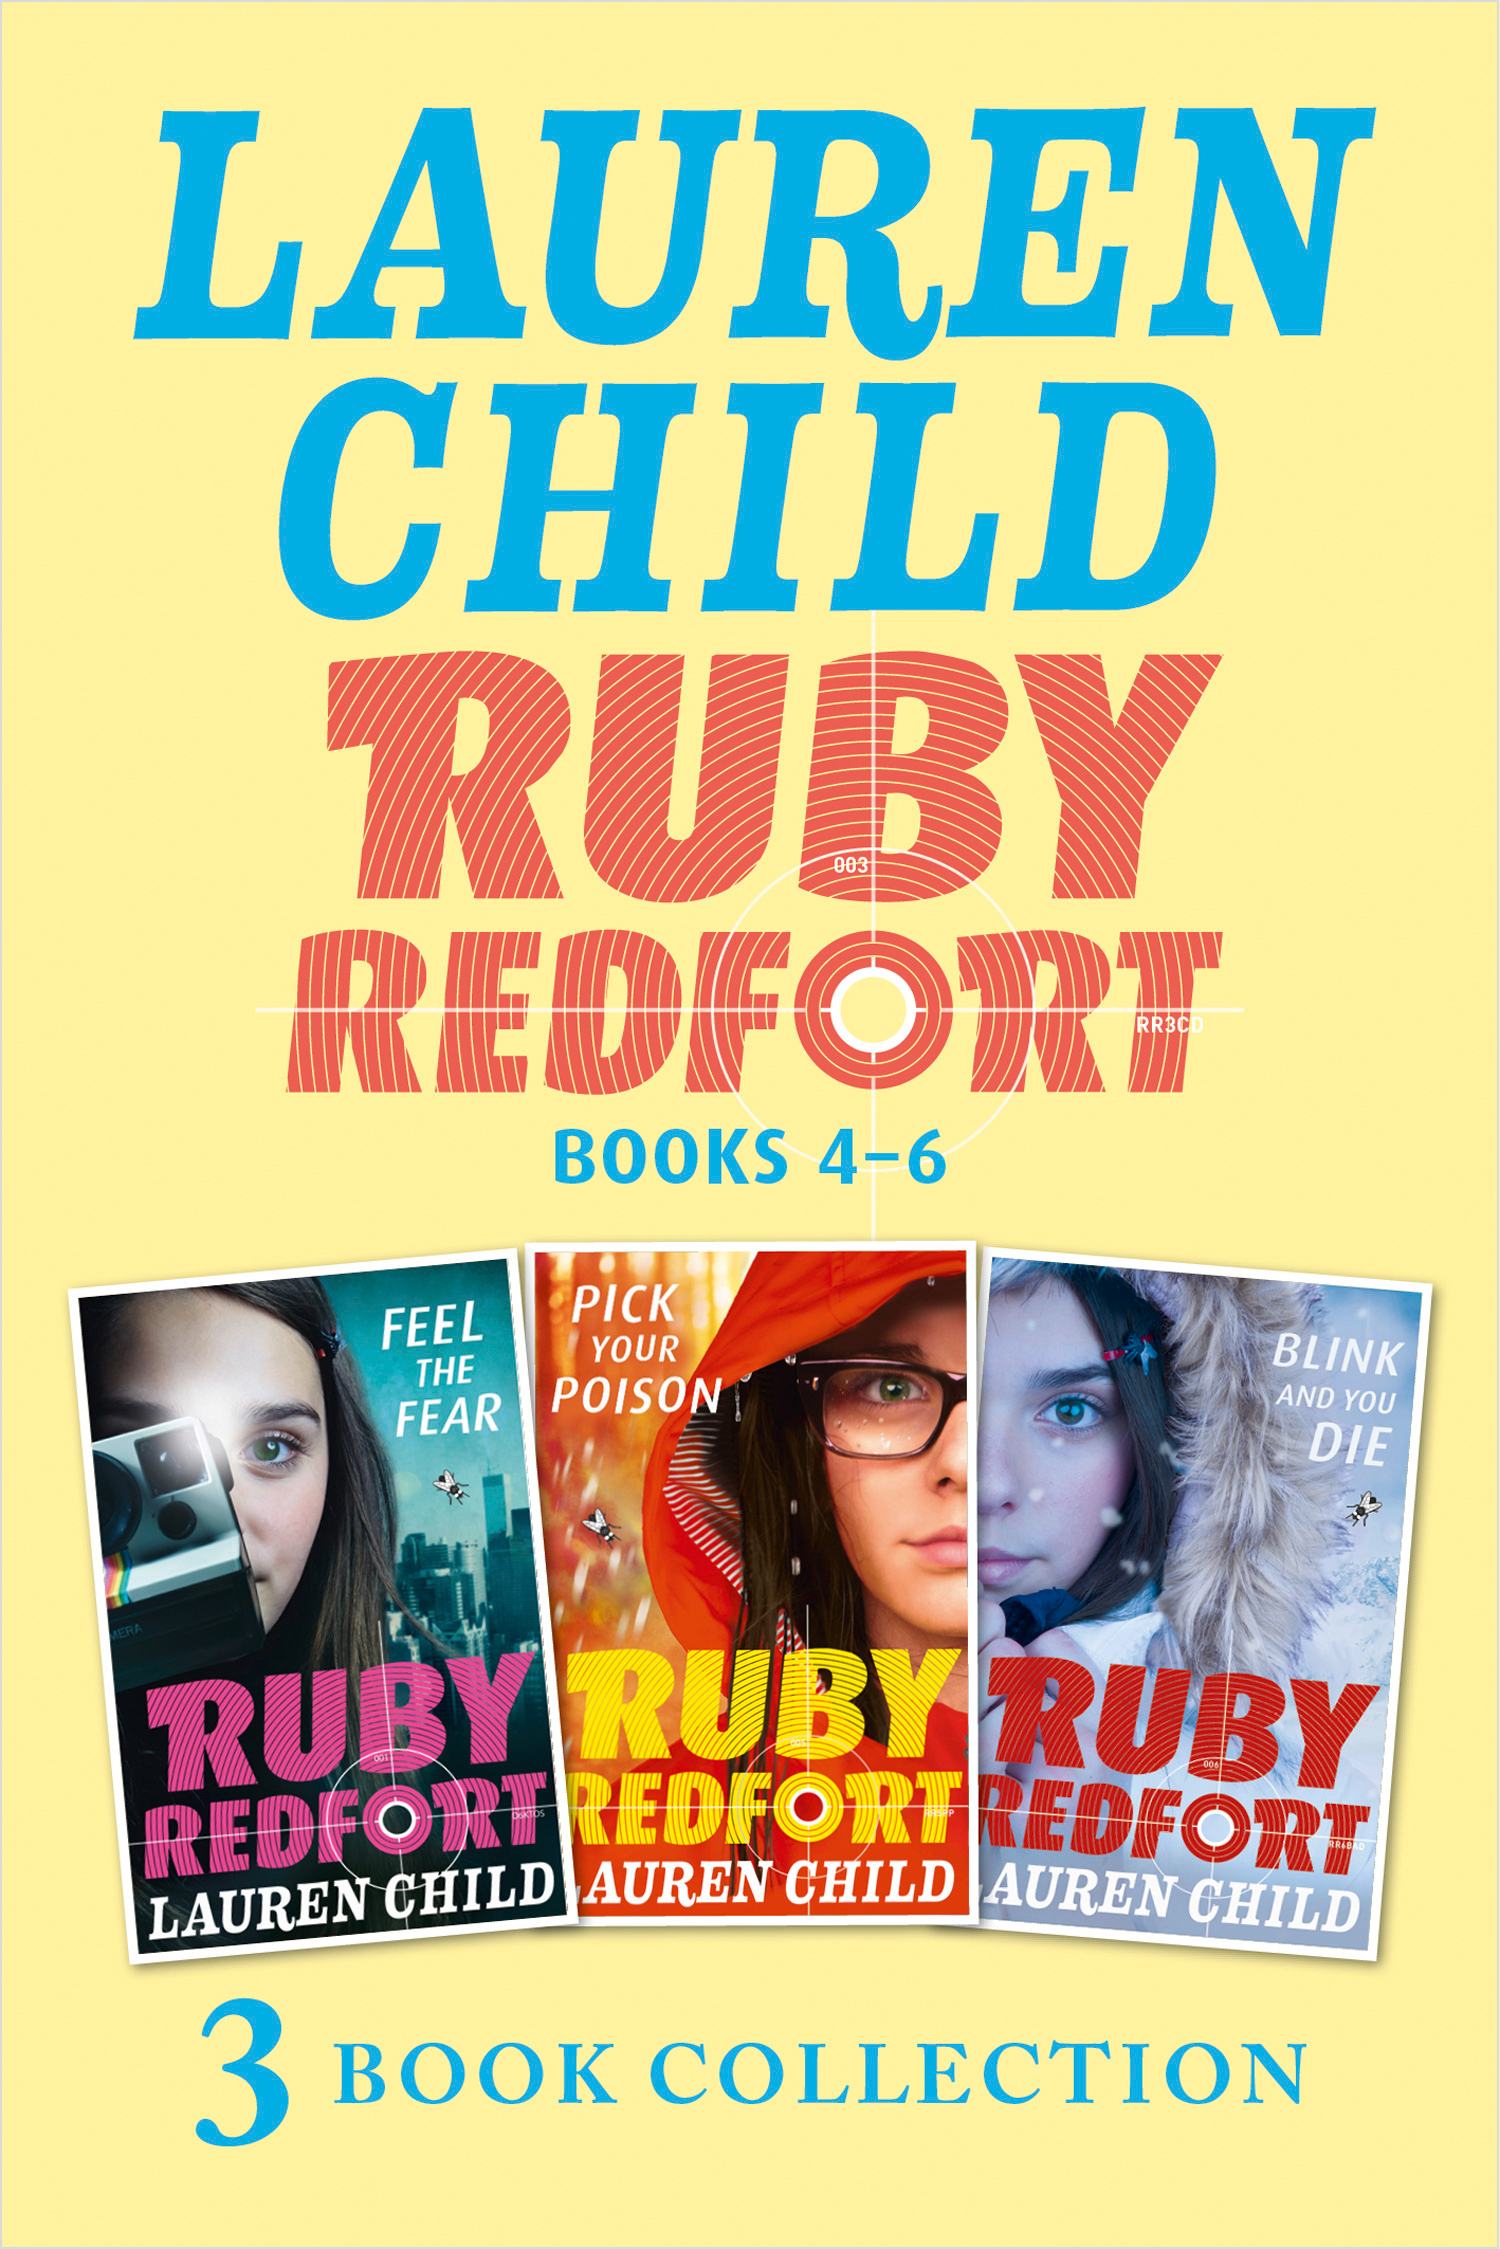 The Ruby Redfort Collection: 4-6: Feed the Fear; Pick Your Poison; Blink and You Die